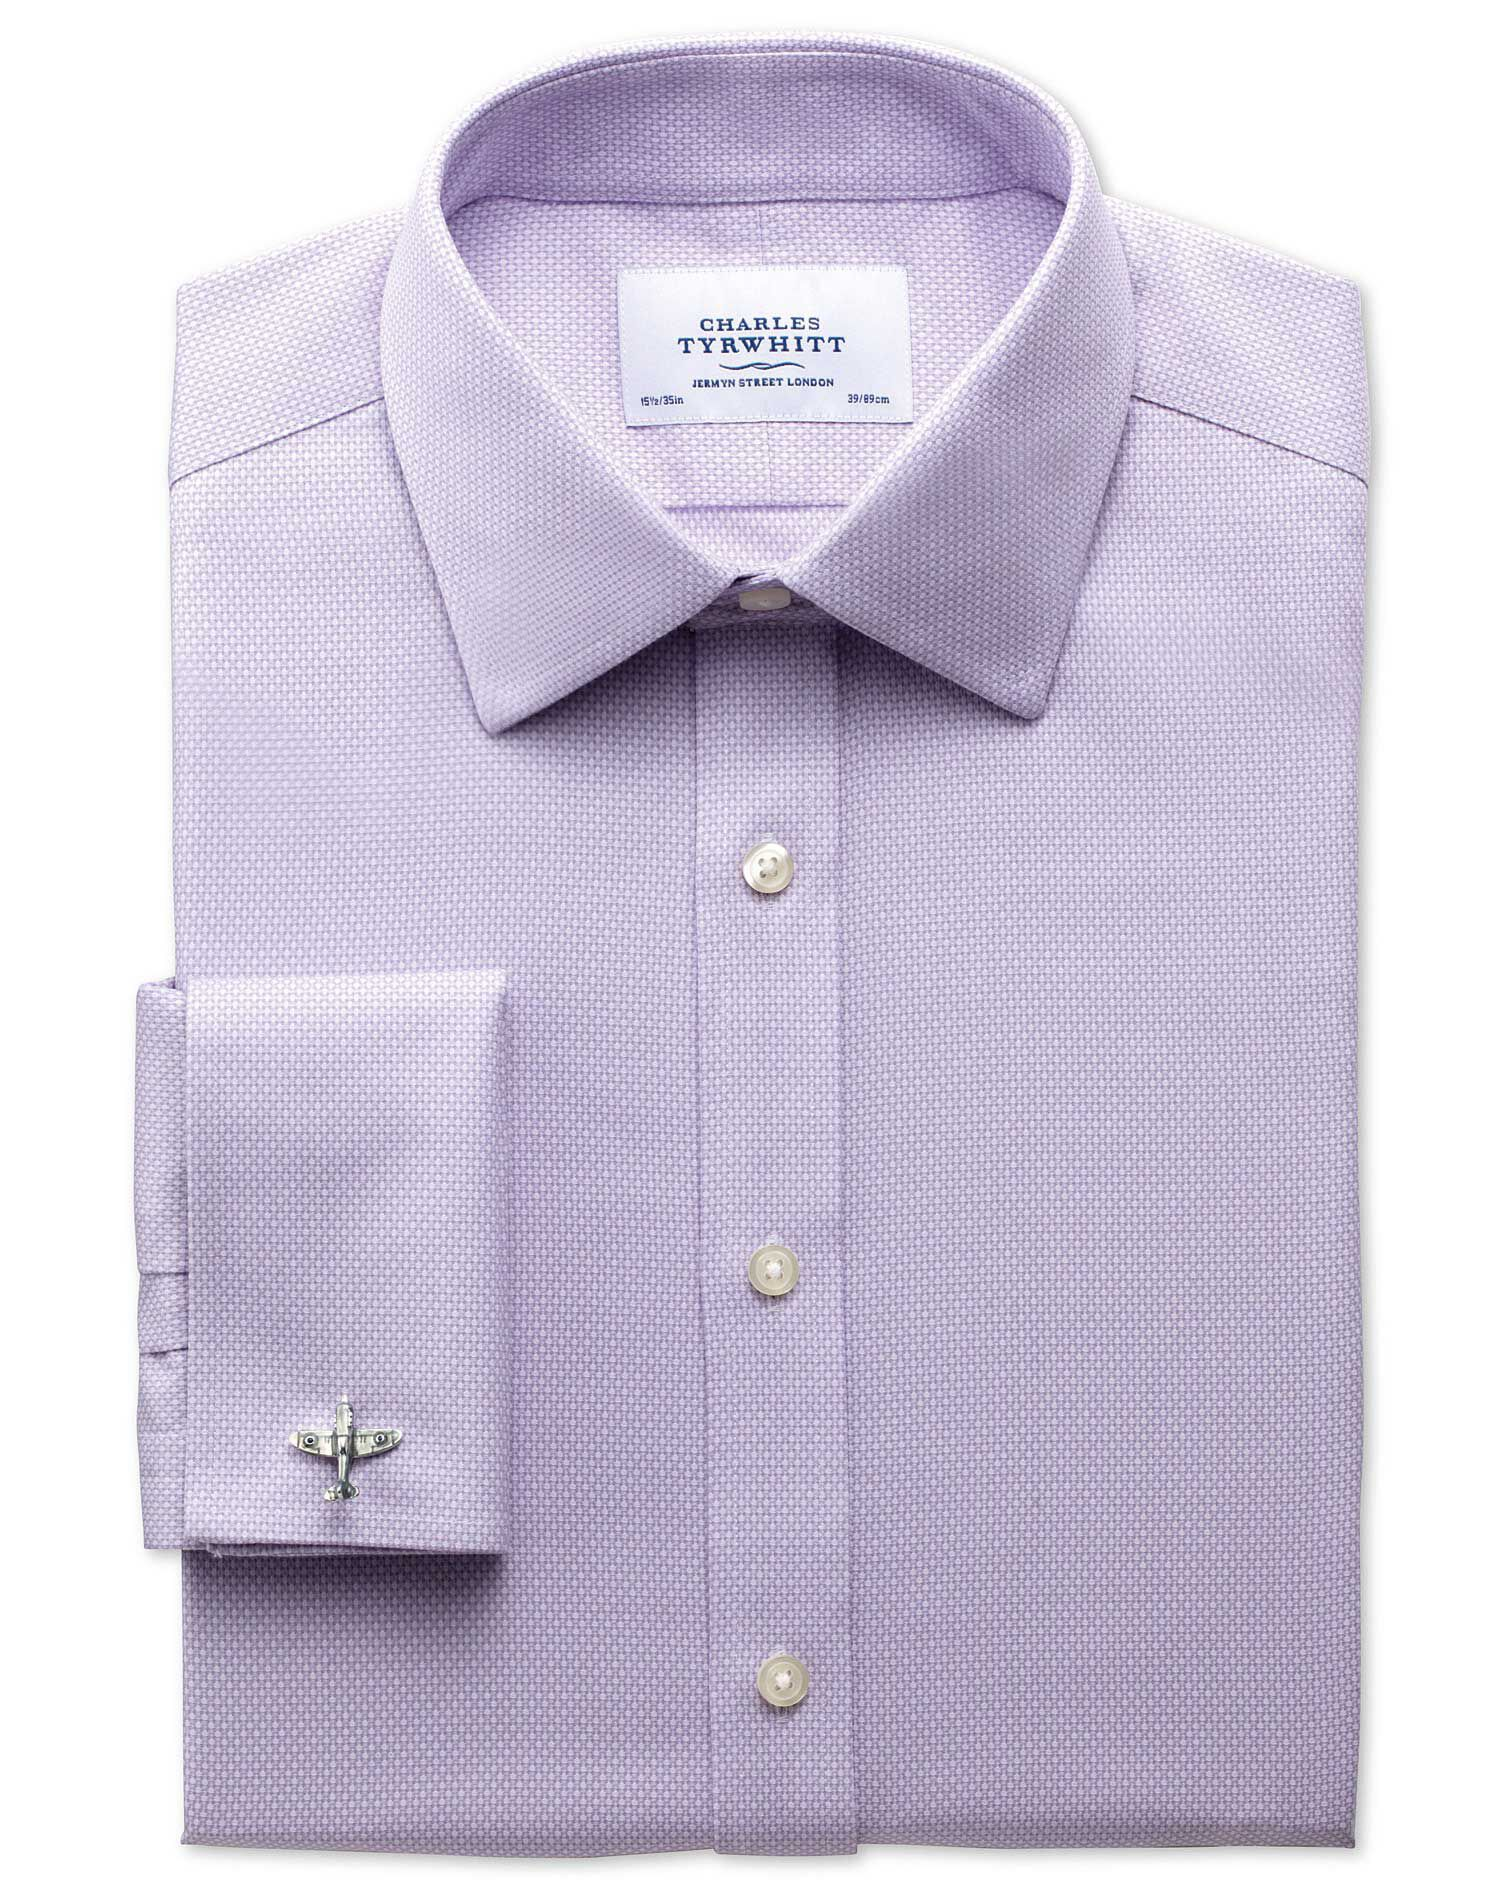 Slim Fit Non-Iron Honeycomb Lilac Cotton Formal Shirt Double Cuff Size 17/37 by Charles Tyrwhitt